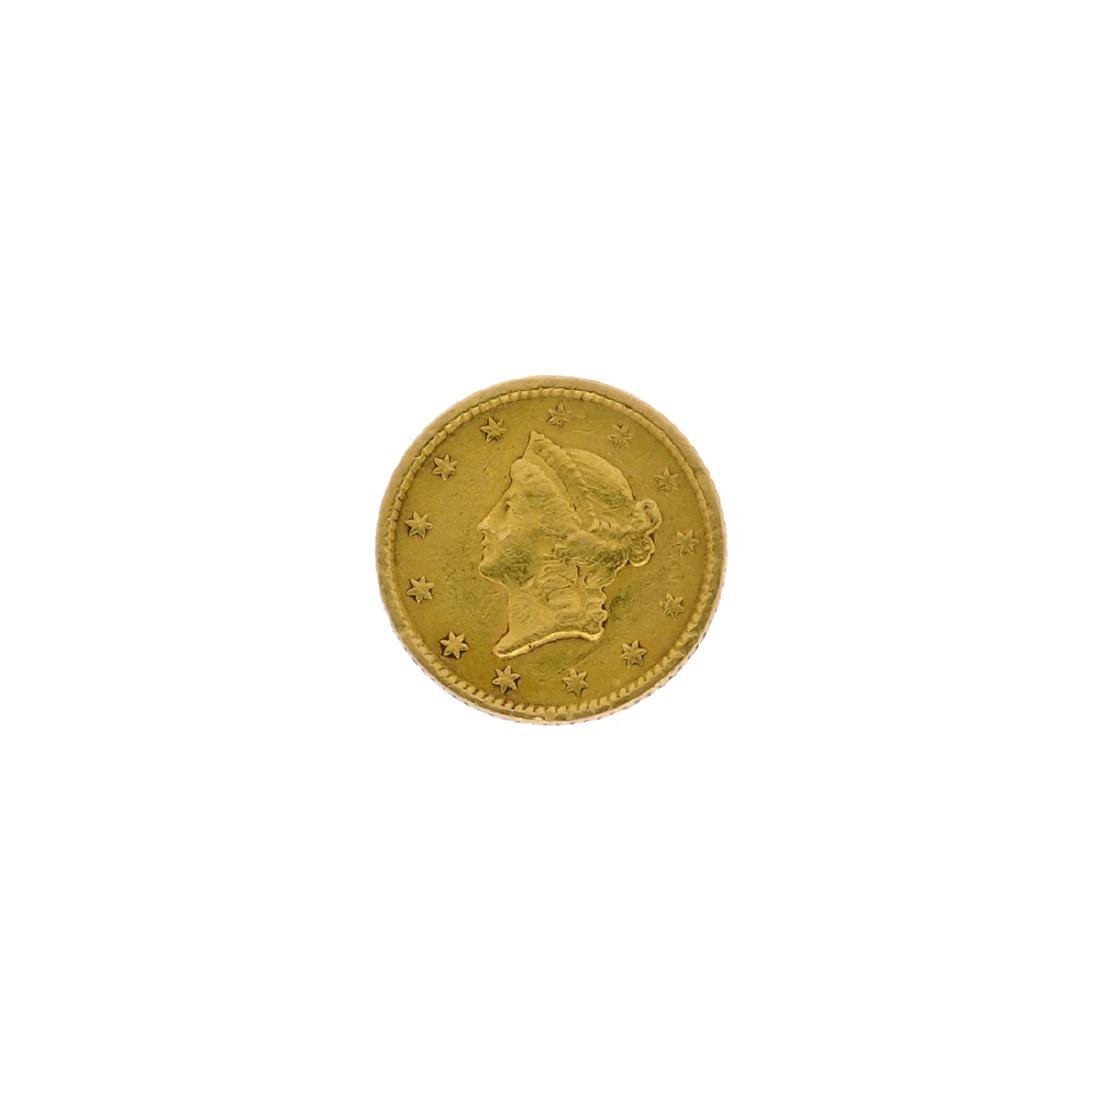 1851 $1 U.S. Liberty Head Gold Coin